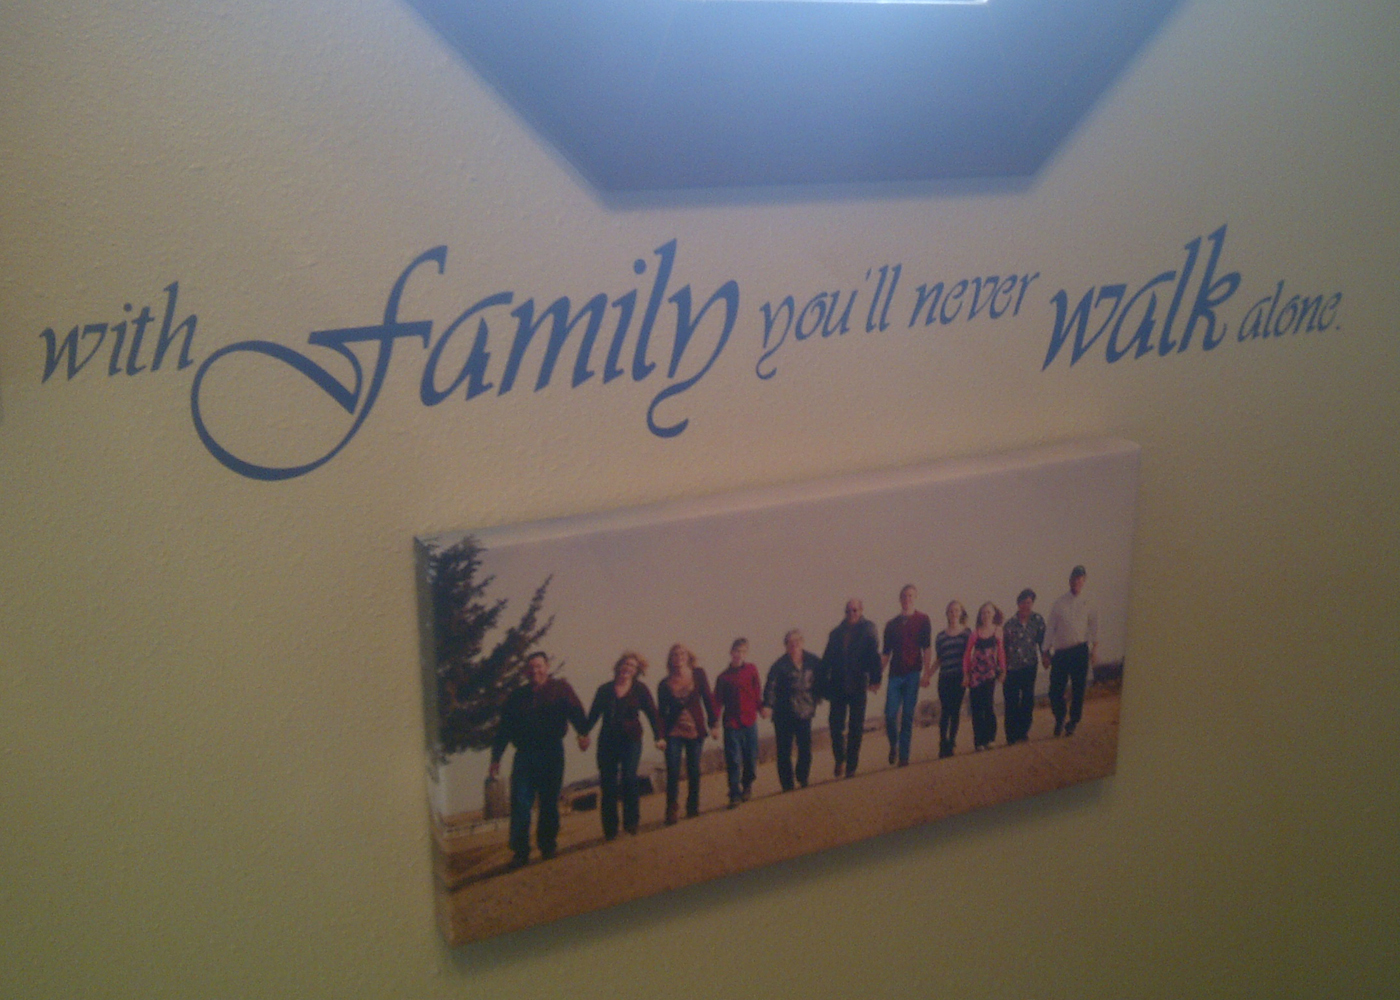 family-never-walk-alone-vinyl-wall-decal-quote.jpg